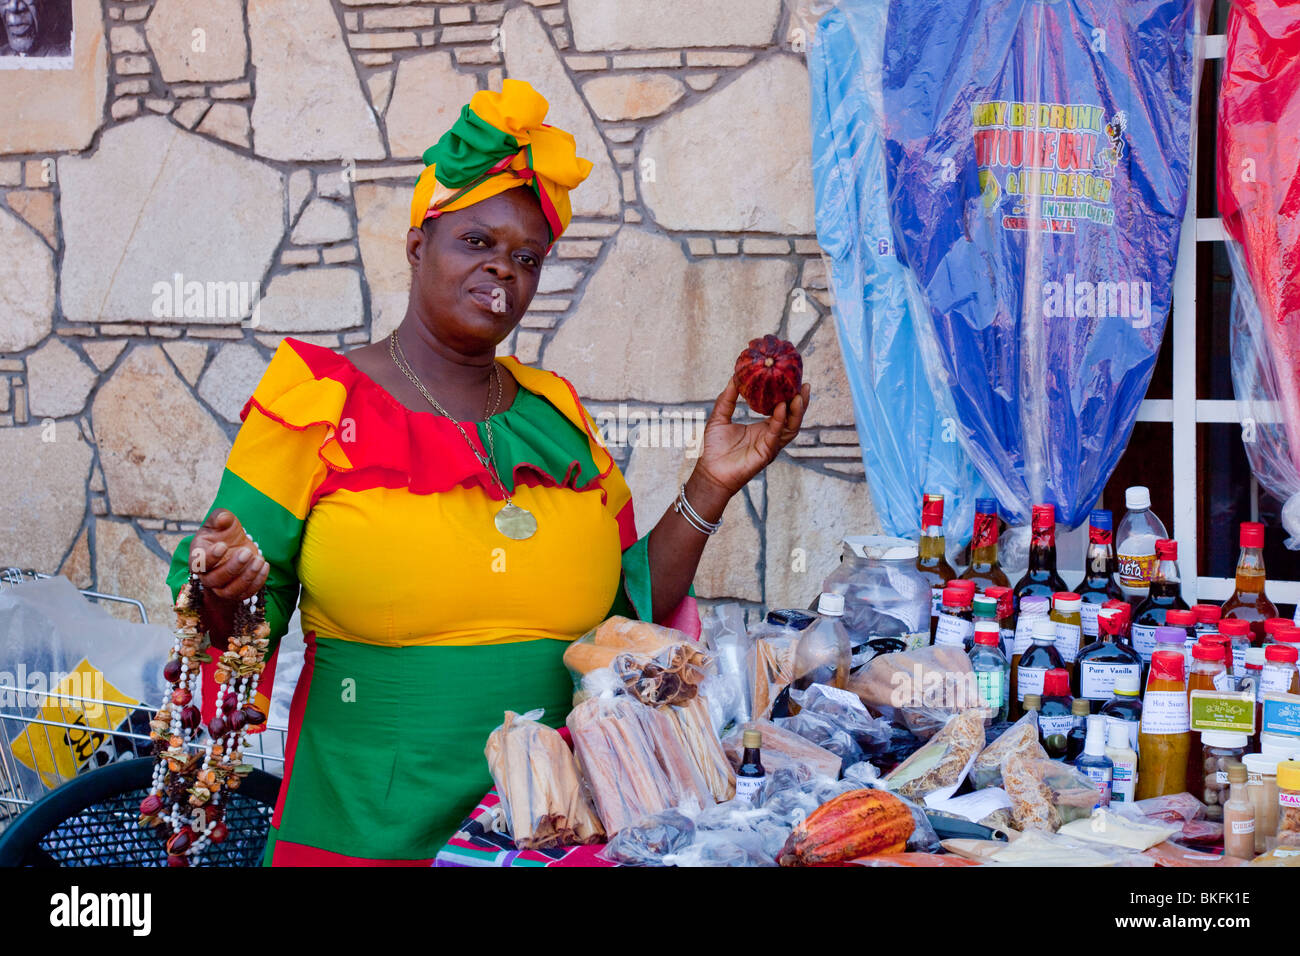 A lady in ethnic dress at a street market kiosk in St. George's, Grenada, West Indies. Stock Photo